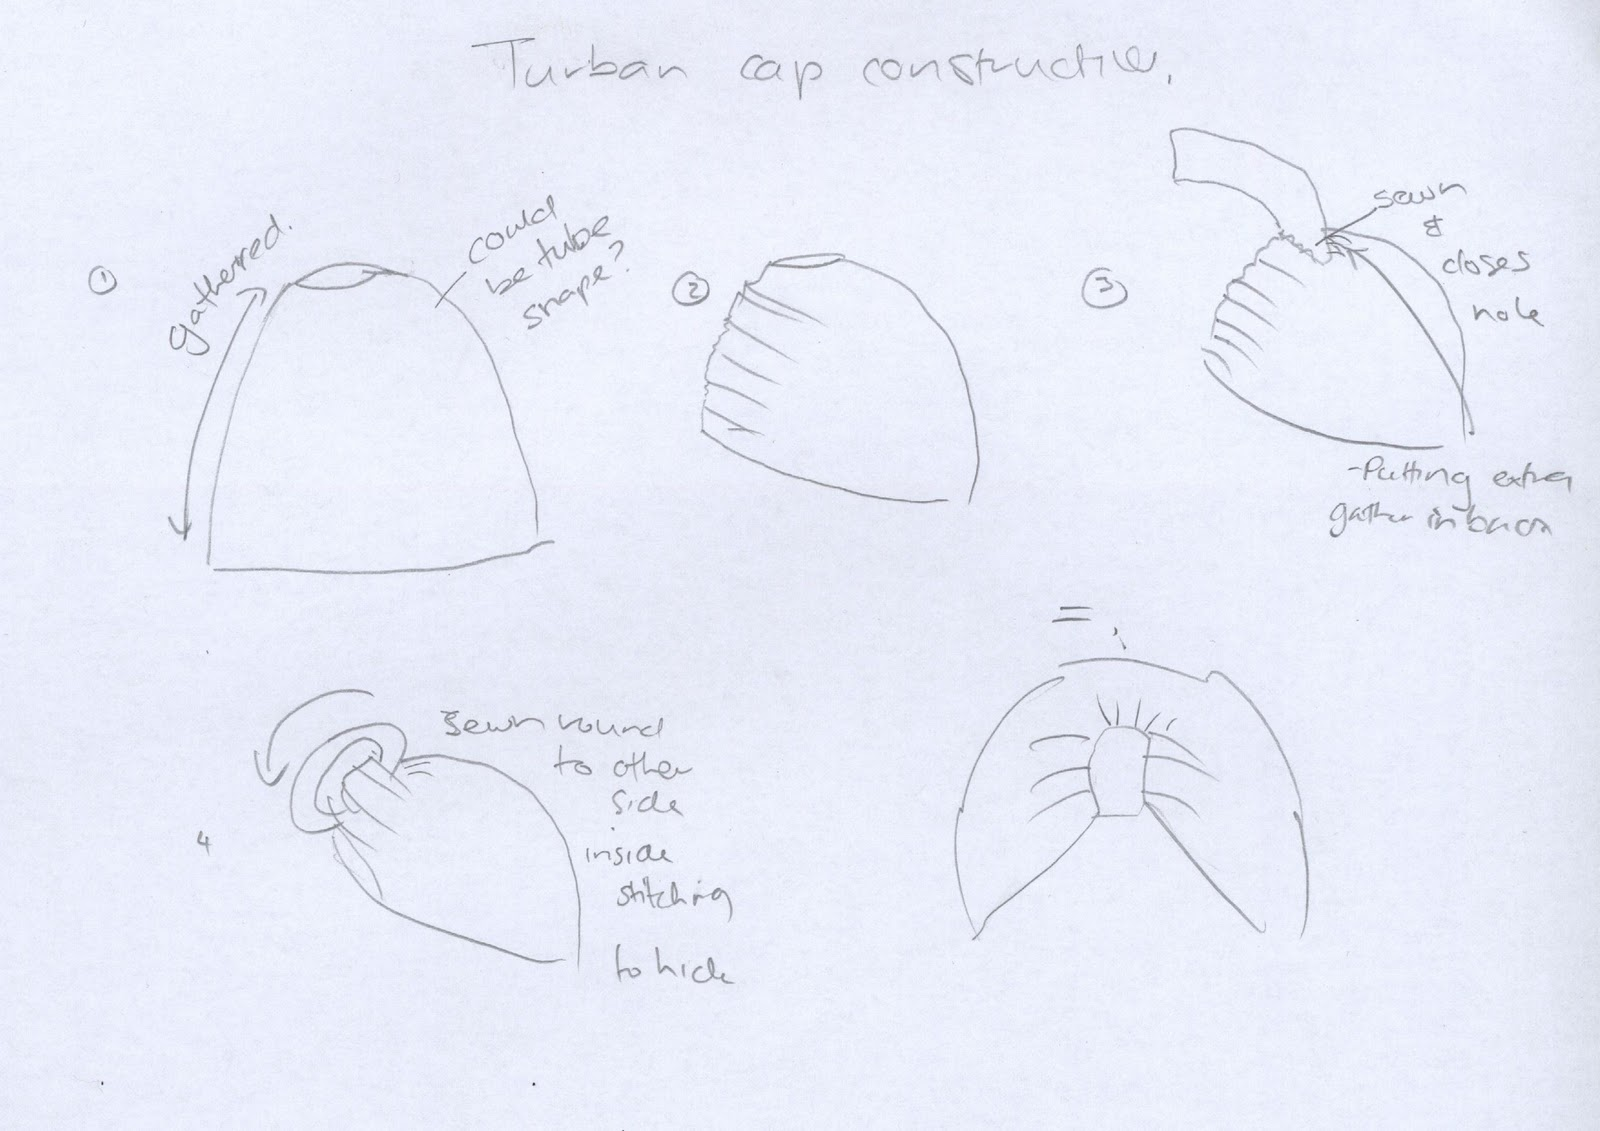 how to make a 1920s turban